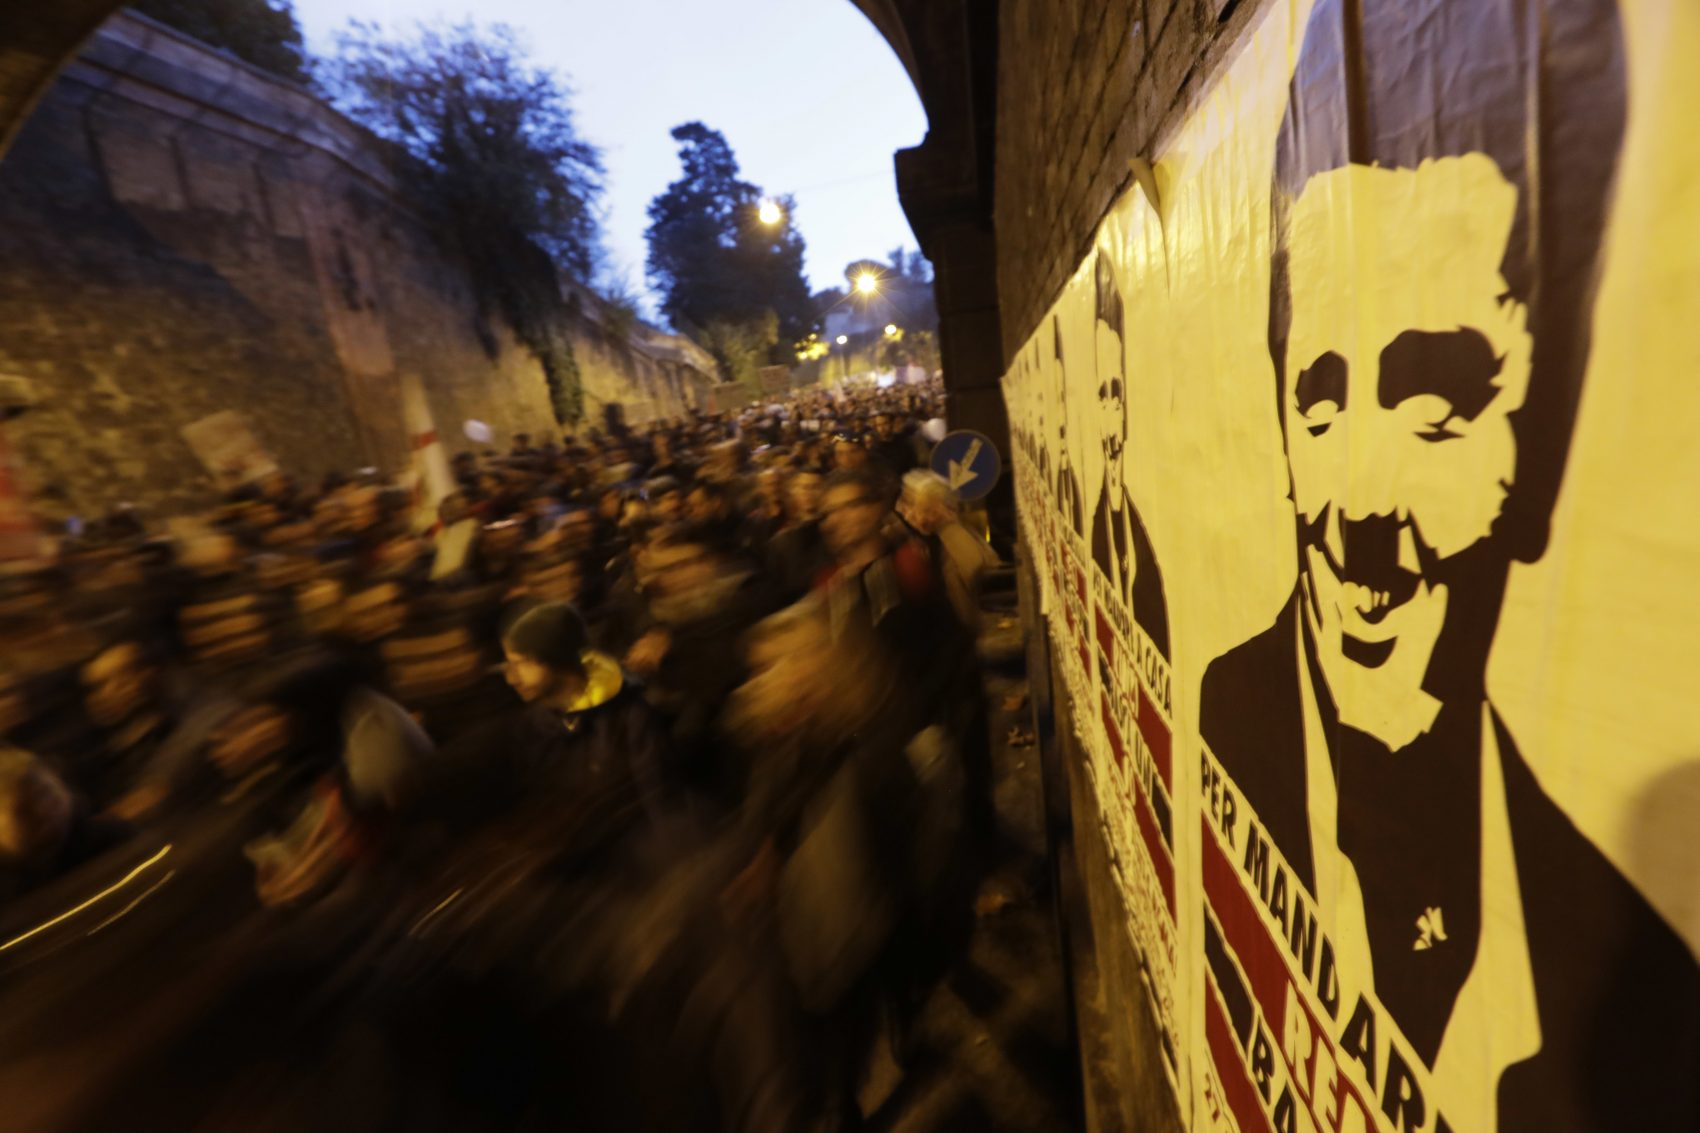 Protesters march past a poster depicting Italian Premier Matteo Renzi during a demonstration ahead of a referendum over a constitutional reform, in Rome, Sunday, Nov. 27, 2016. (Andrew Medichini/AP)